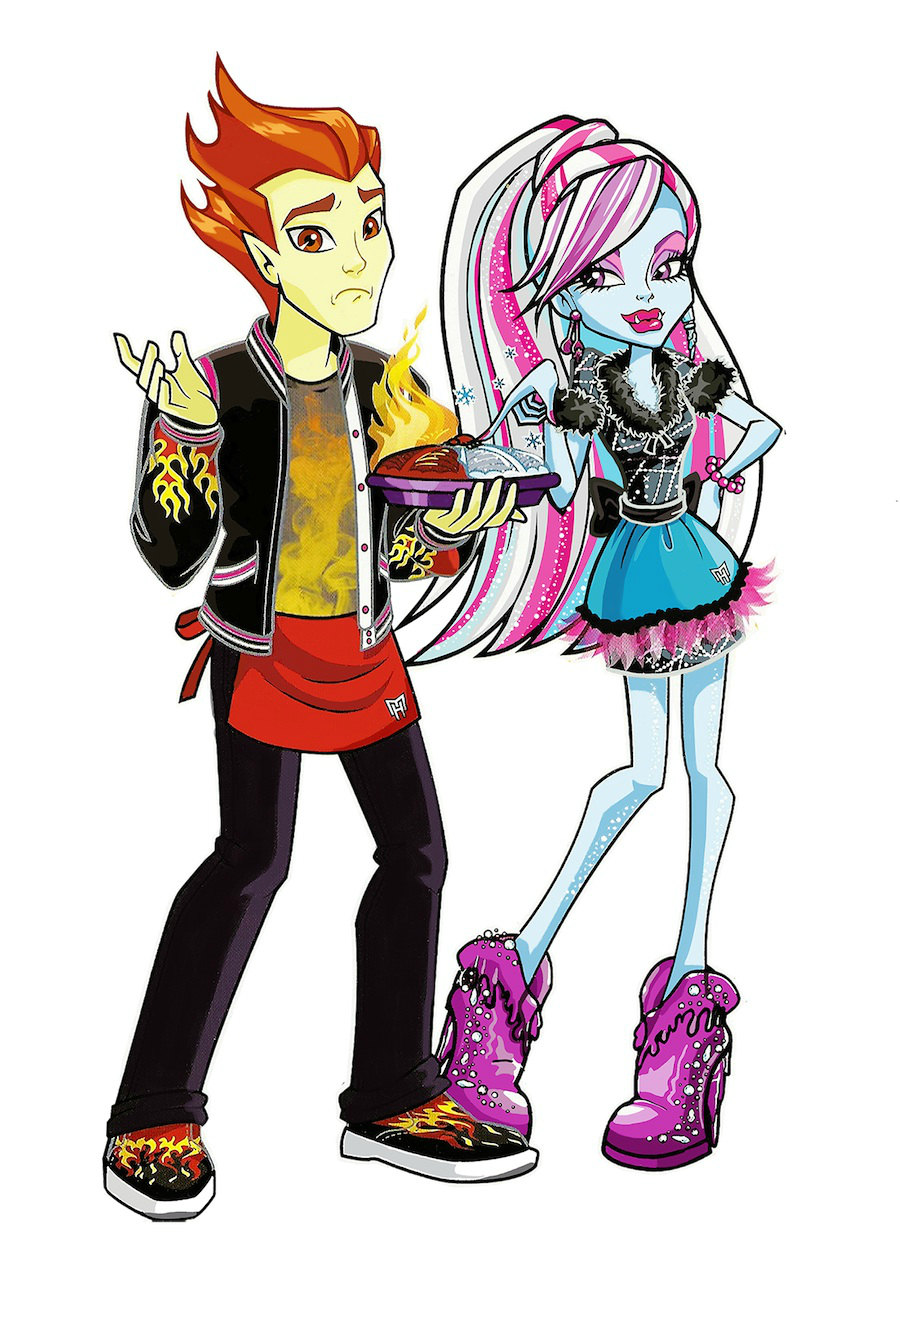 Uncategorized Monster High Abby abbey bominable monster high wiki fandom powered by wikia profile art home ick heath and abbey